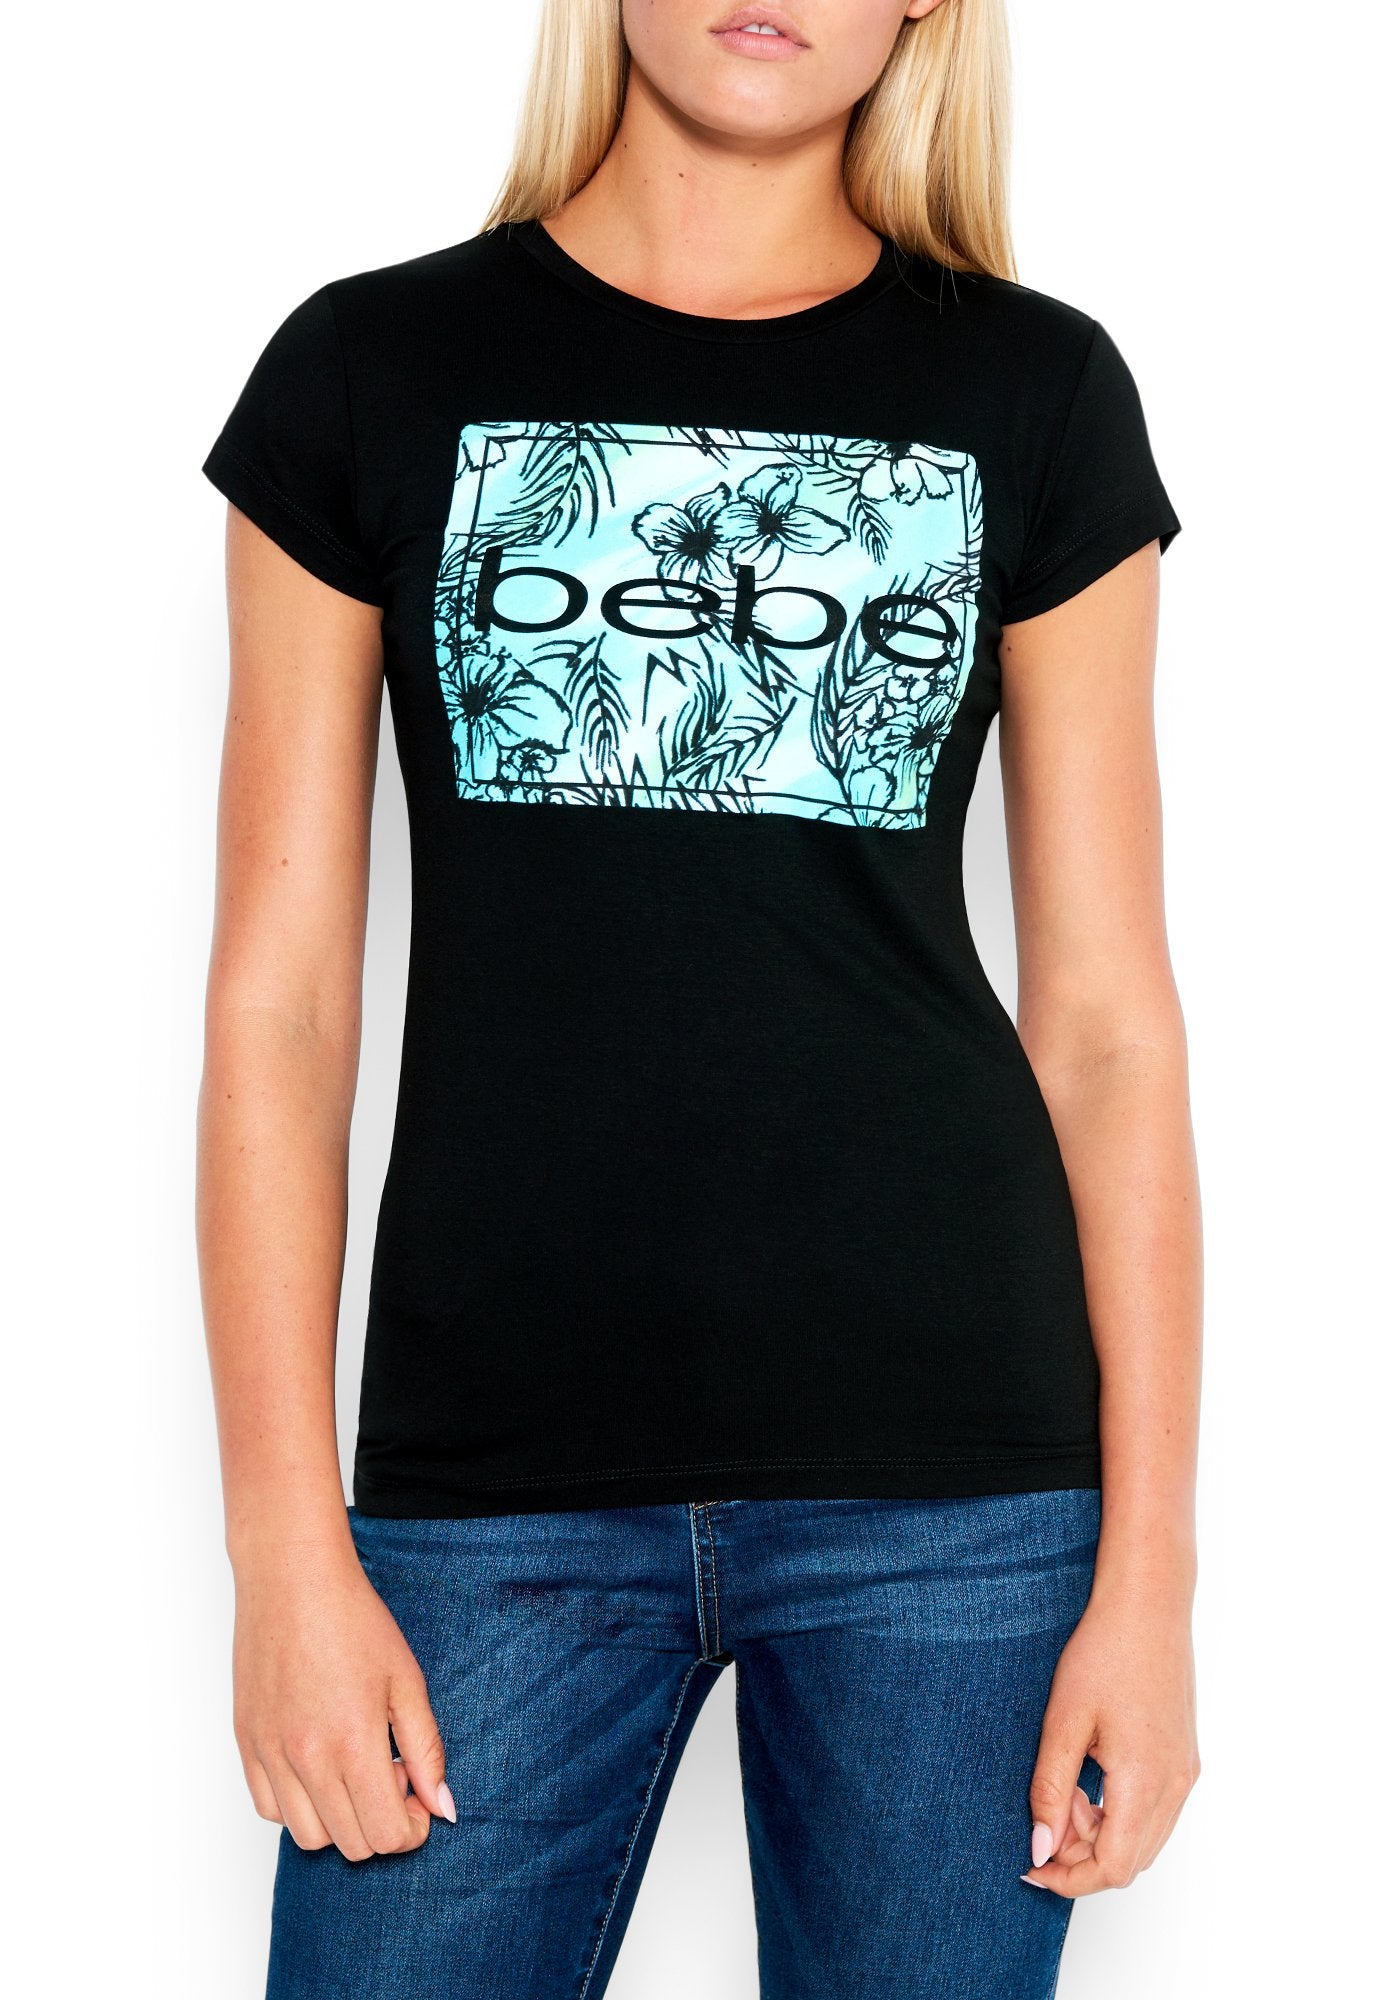 Image of Women's Bebe Logo Tropical Print Tee Shirt, Size Small in BLACK Spandex